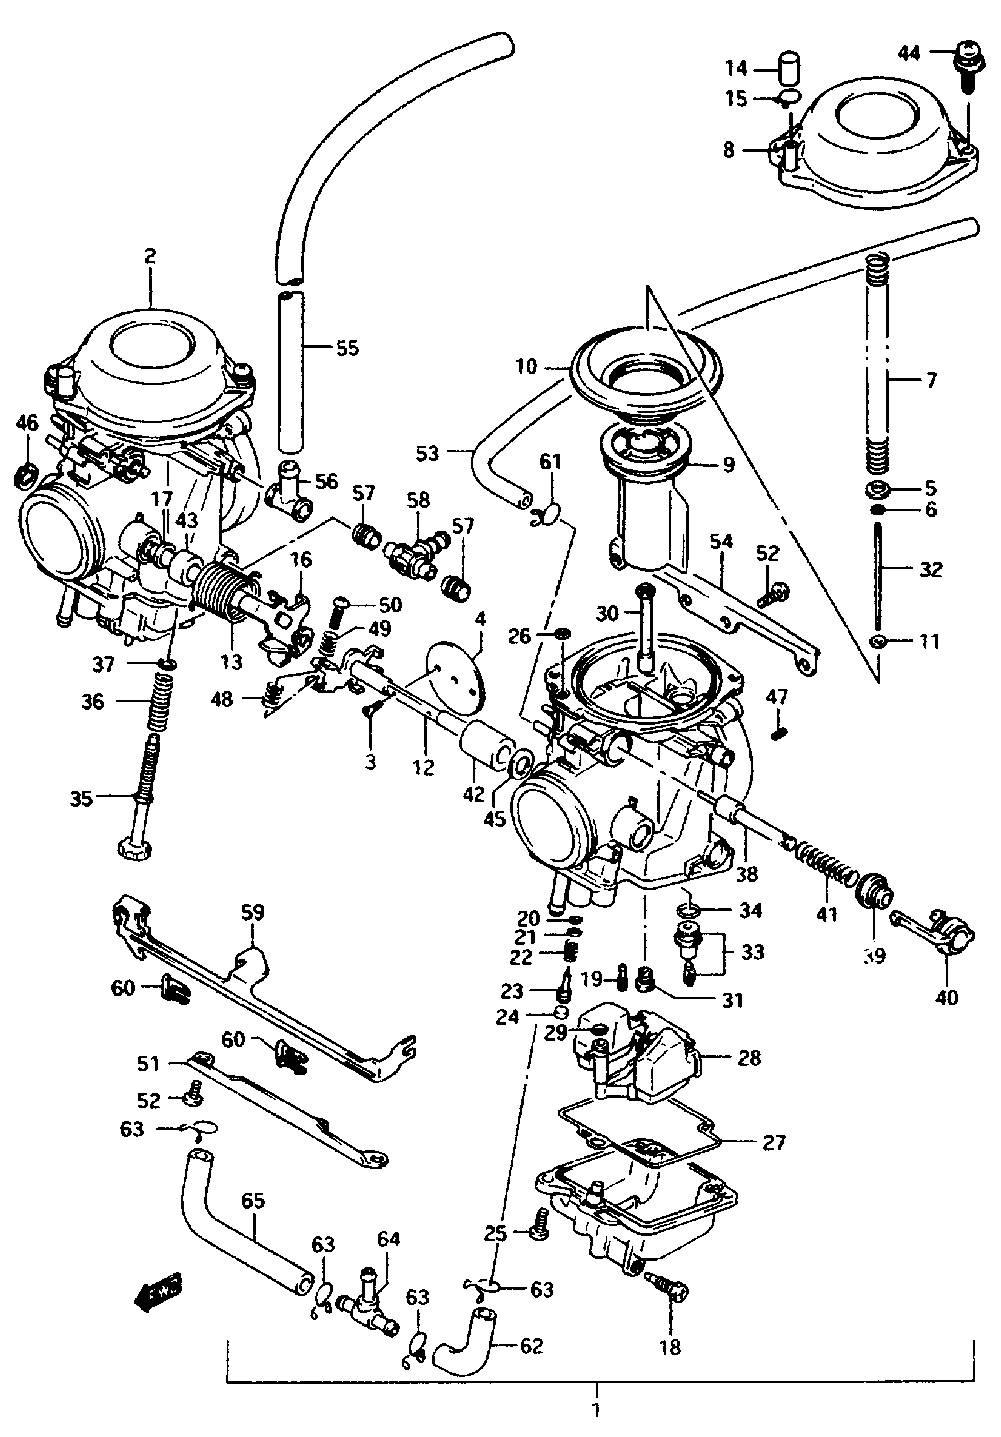 mikuni carb parts diagram